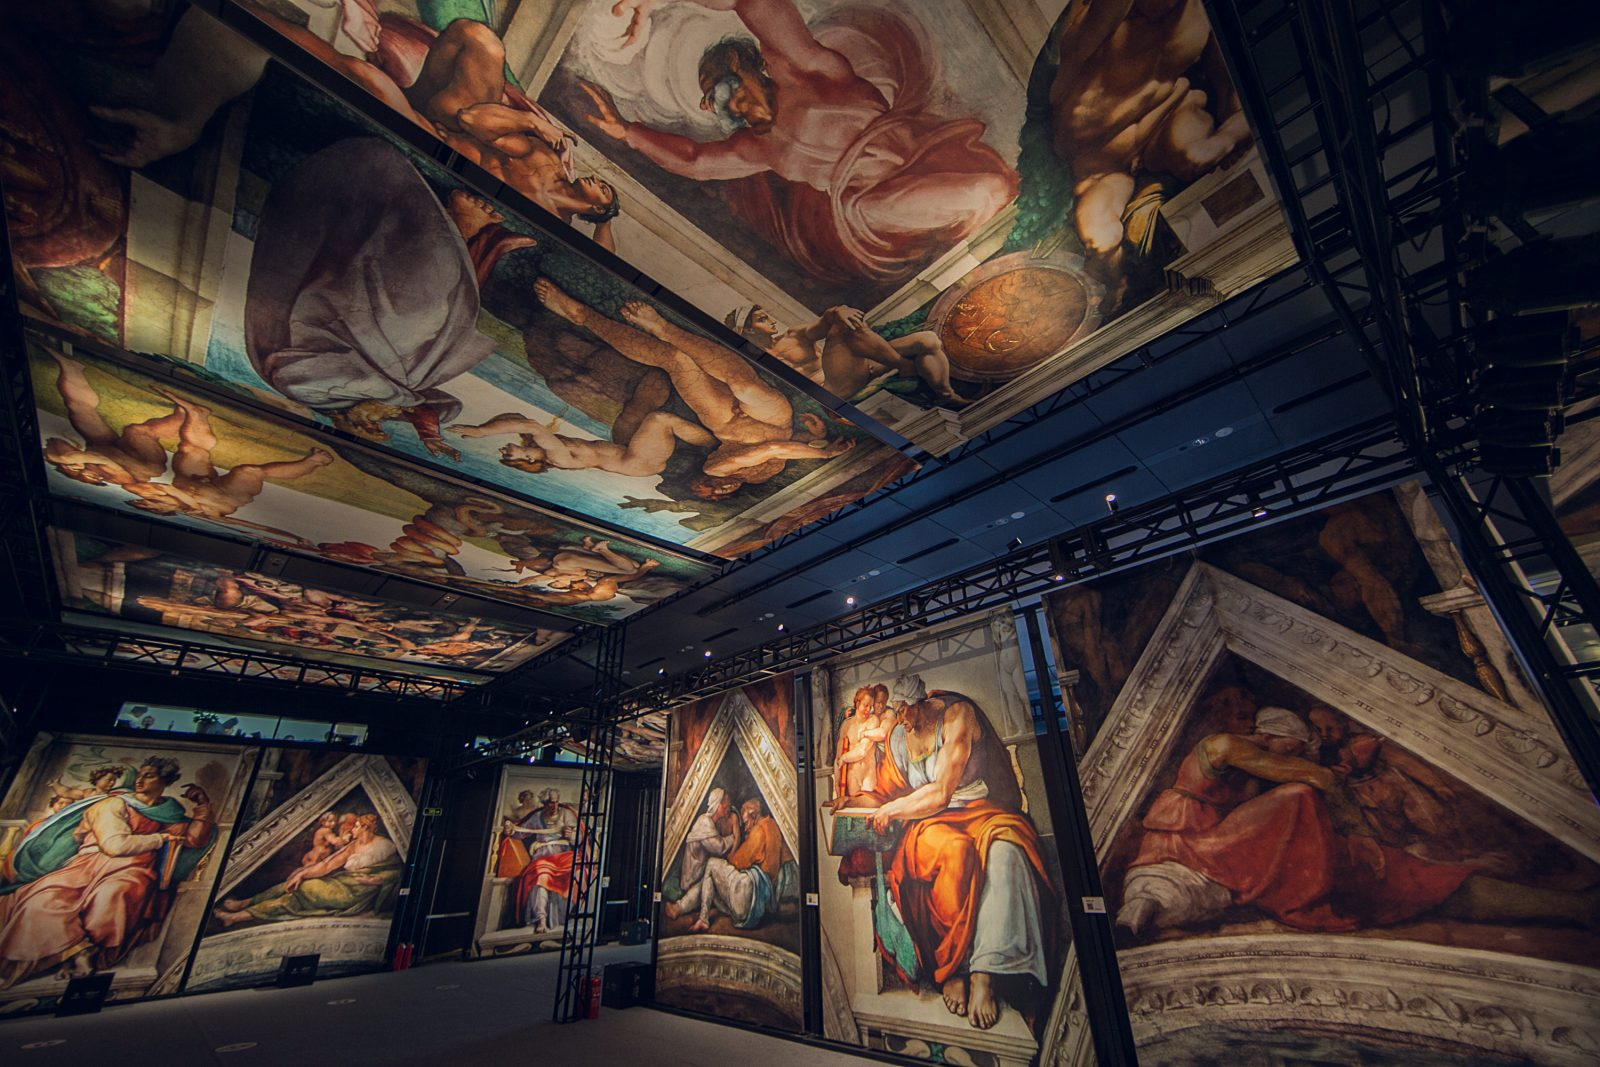 'Michelangelo's Sistine Chapel: The Exhibition' installation view.